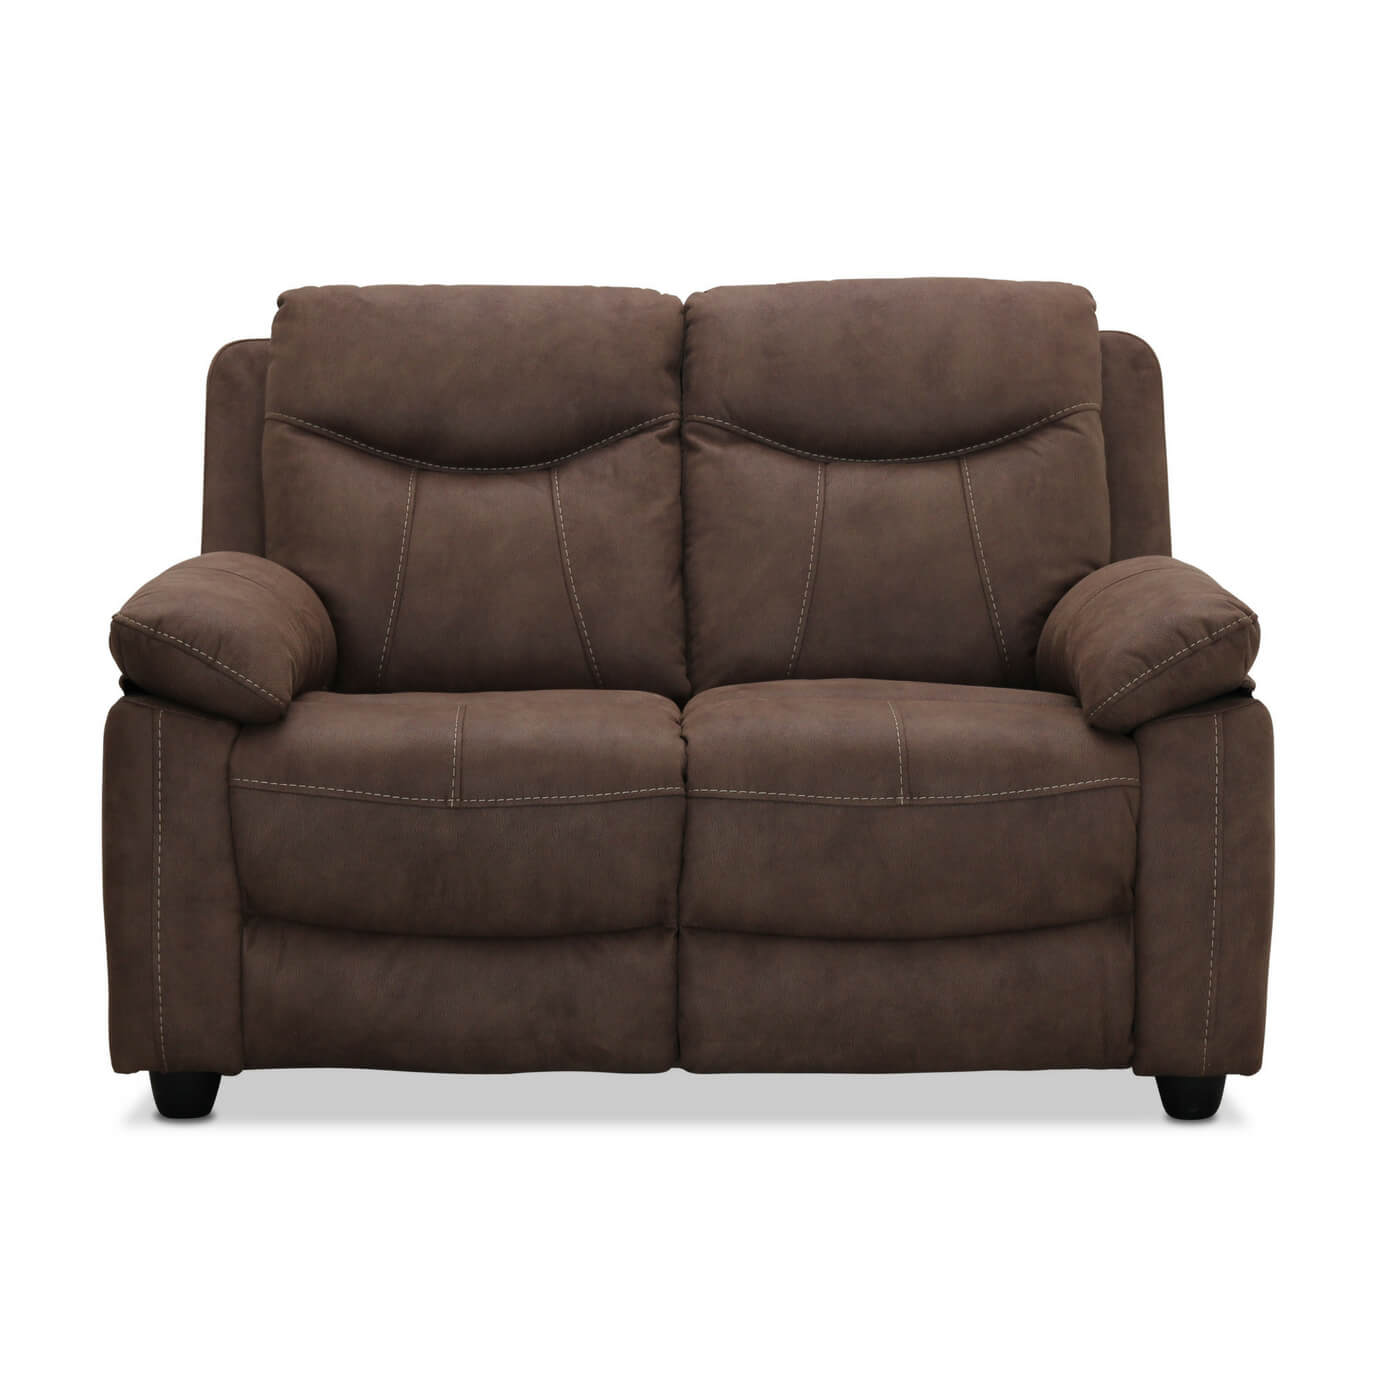 Image of   Boston 2 personers sofa, brun stof